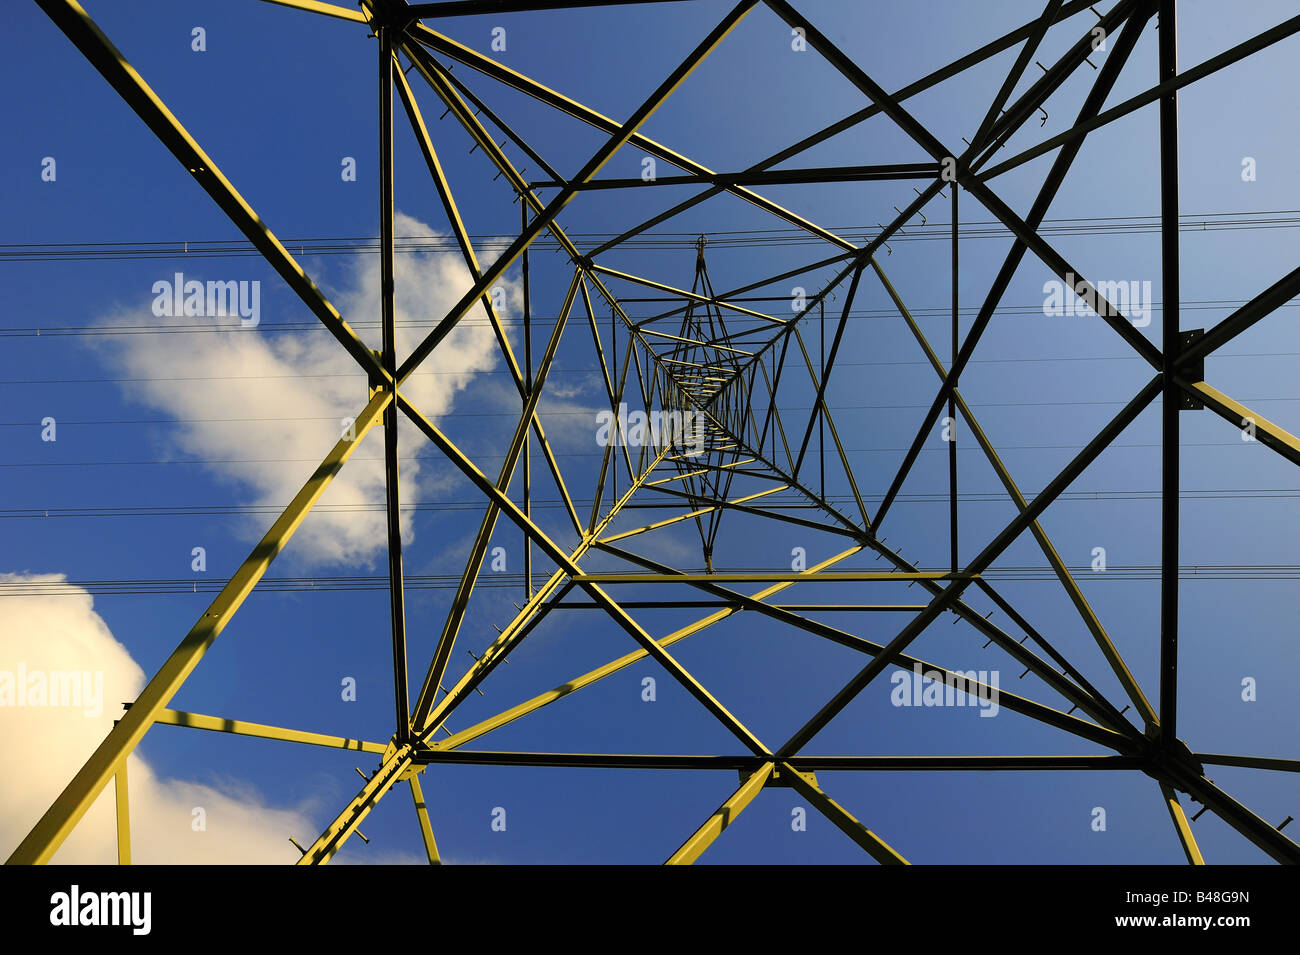 Pylon from below - Stock Image